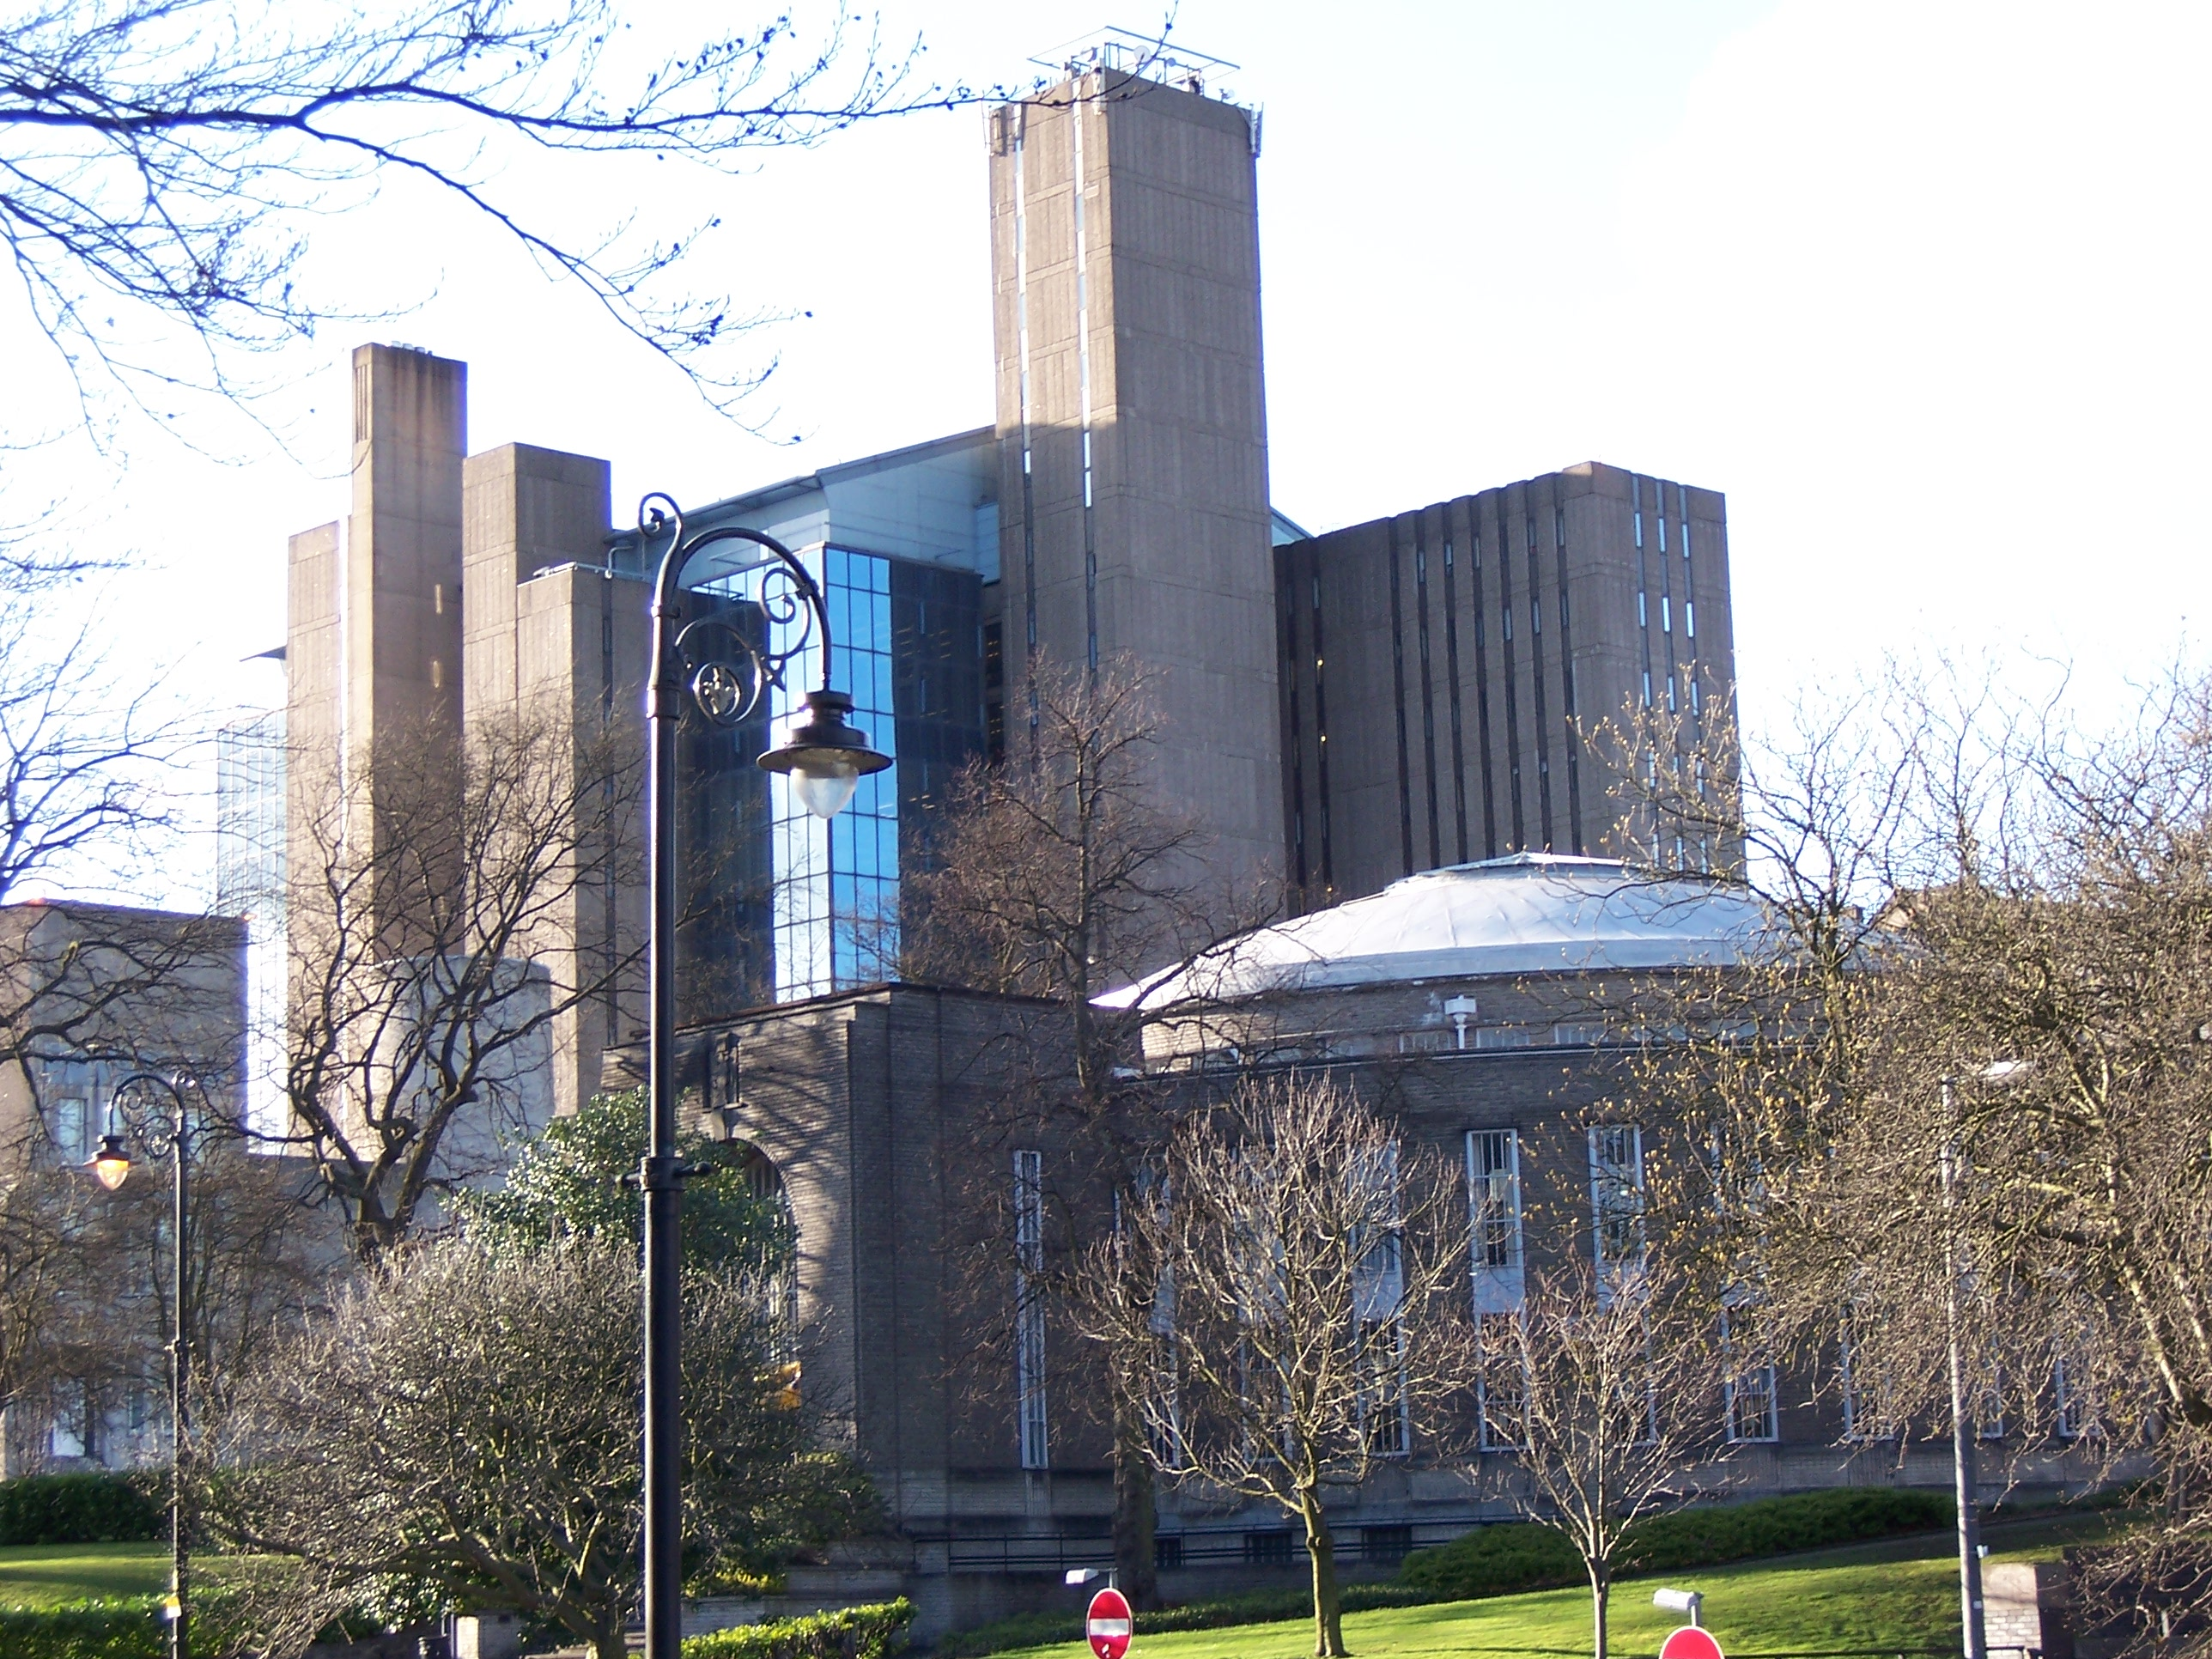 The library at University of Glasgow